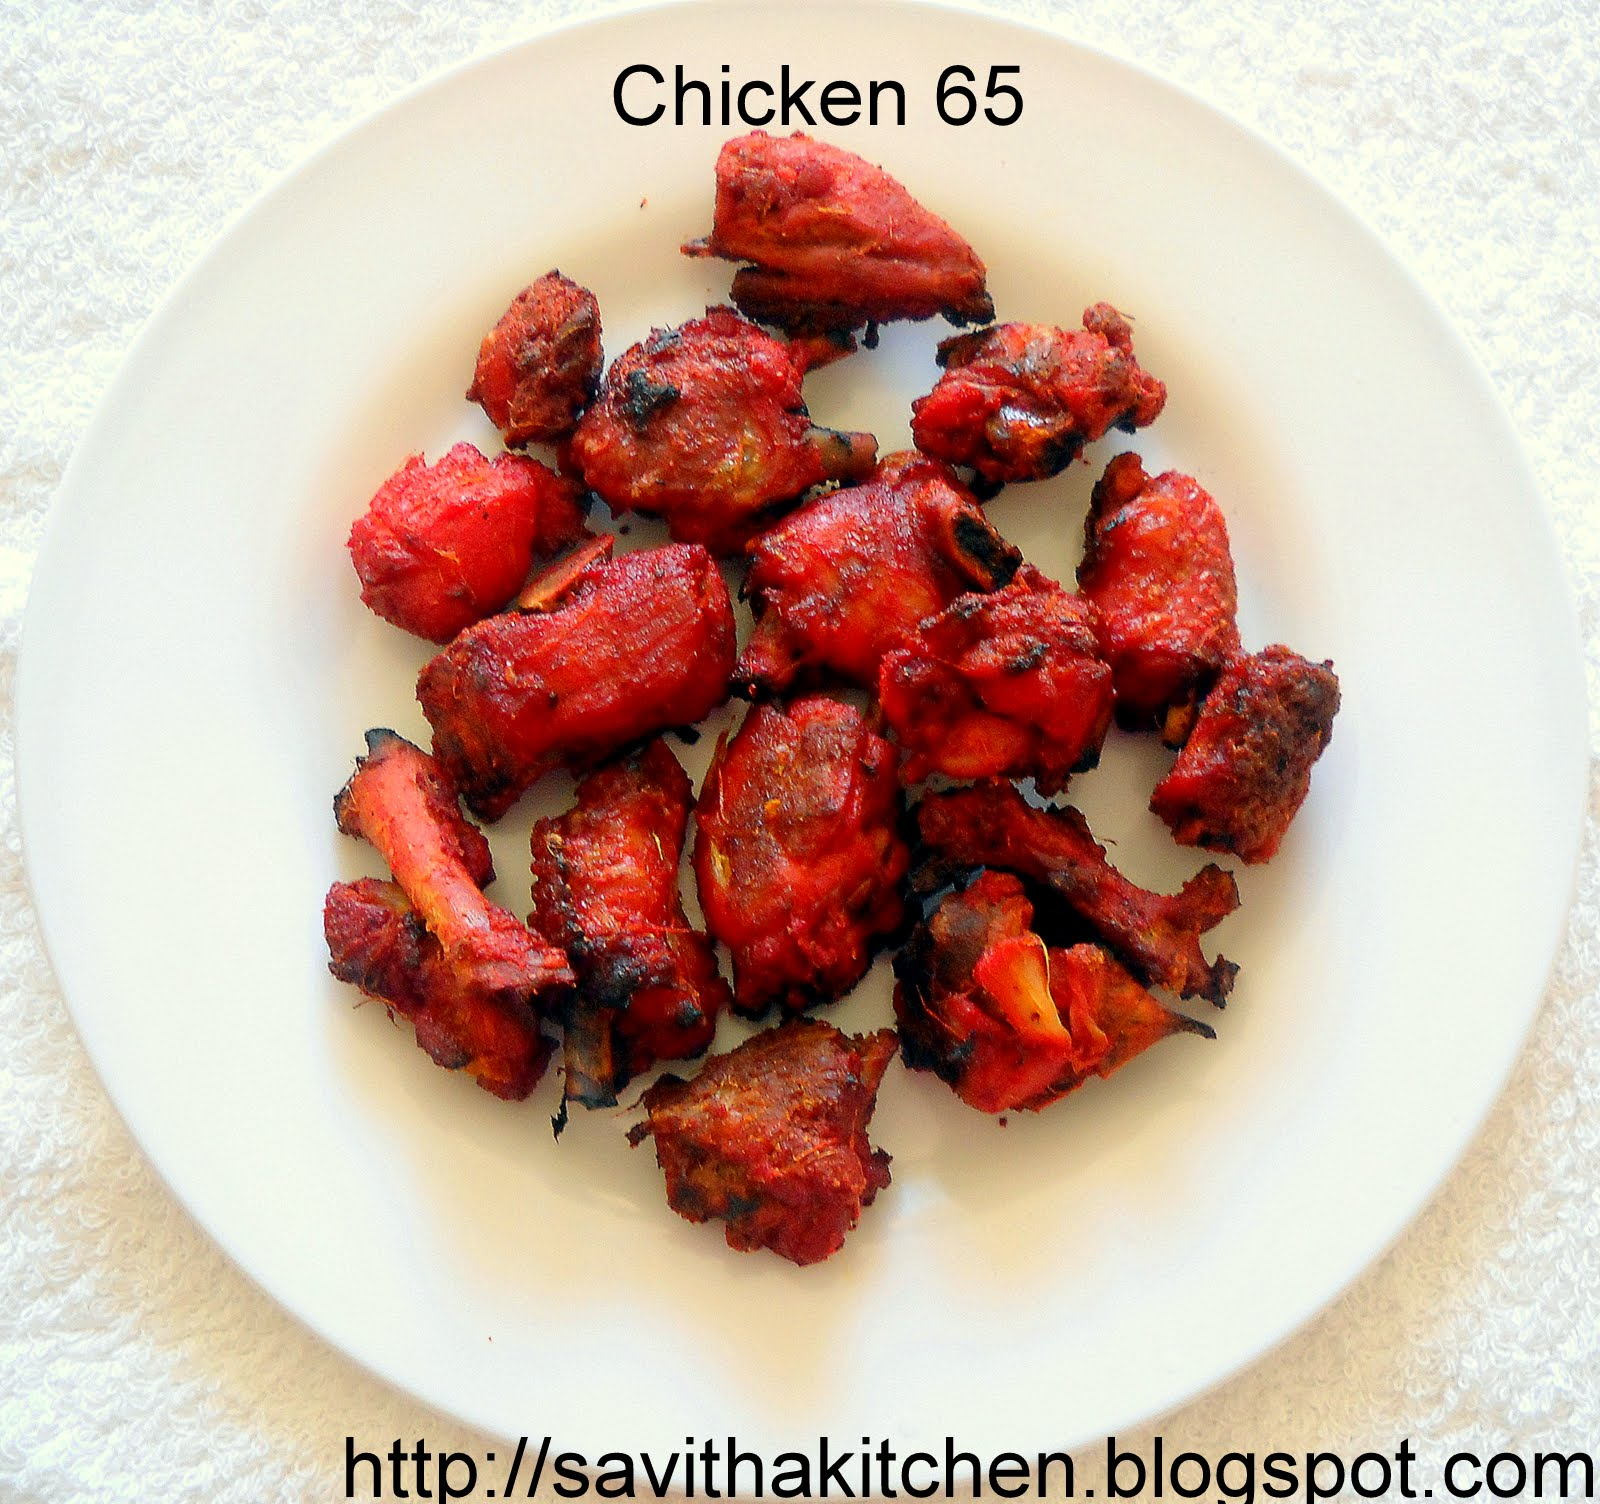 Chicken 65 healthy food kitchen - Chicken 65 Healthy Food Kitchen 5